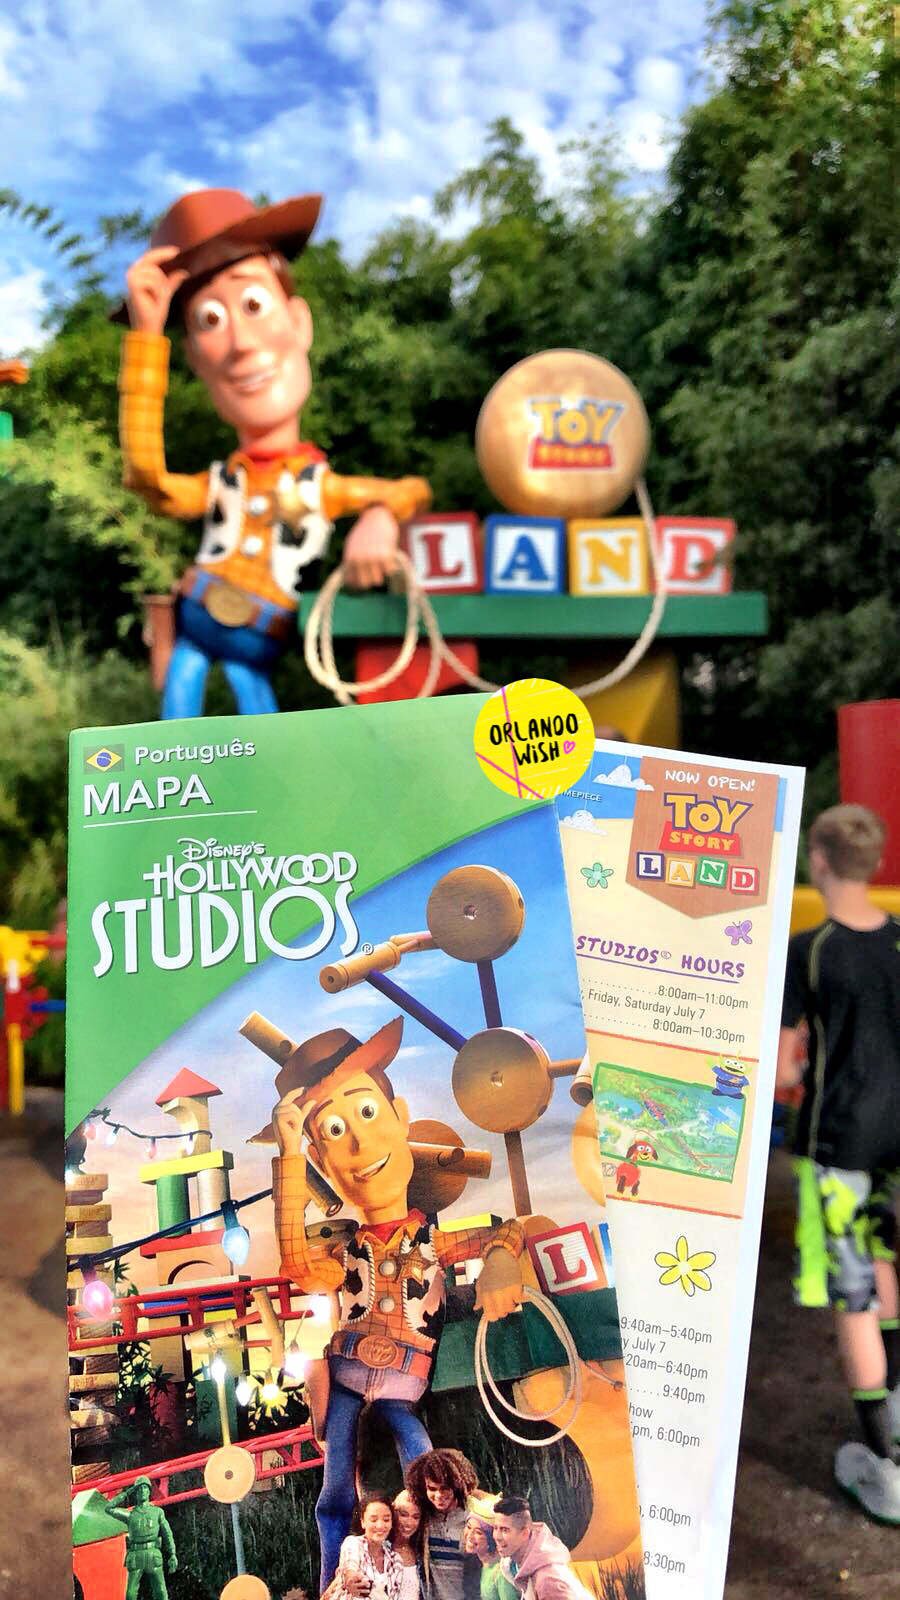 Guide Map Toy Story Land